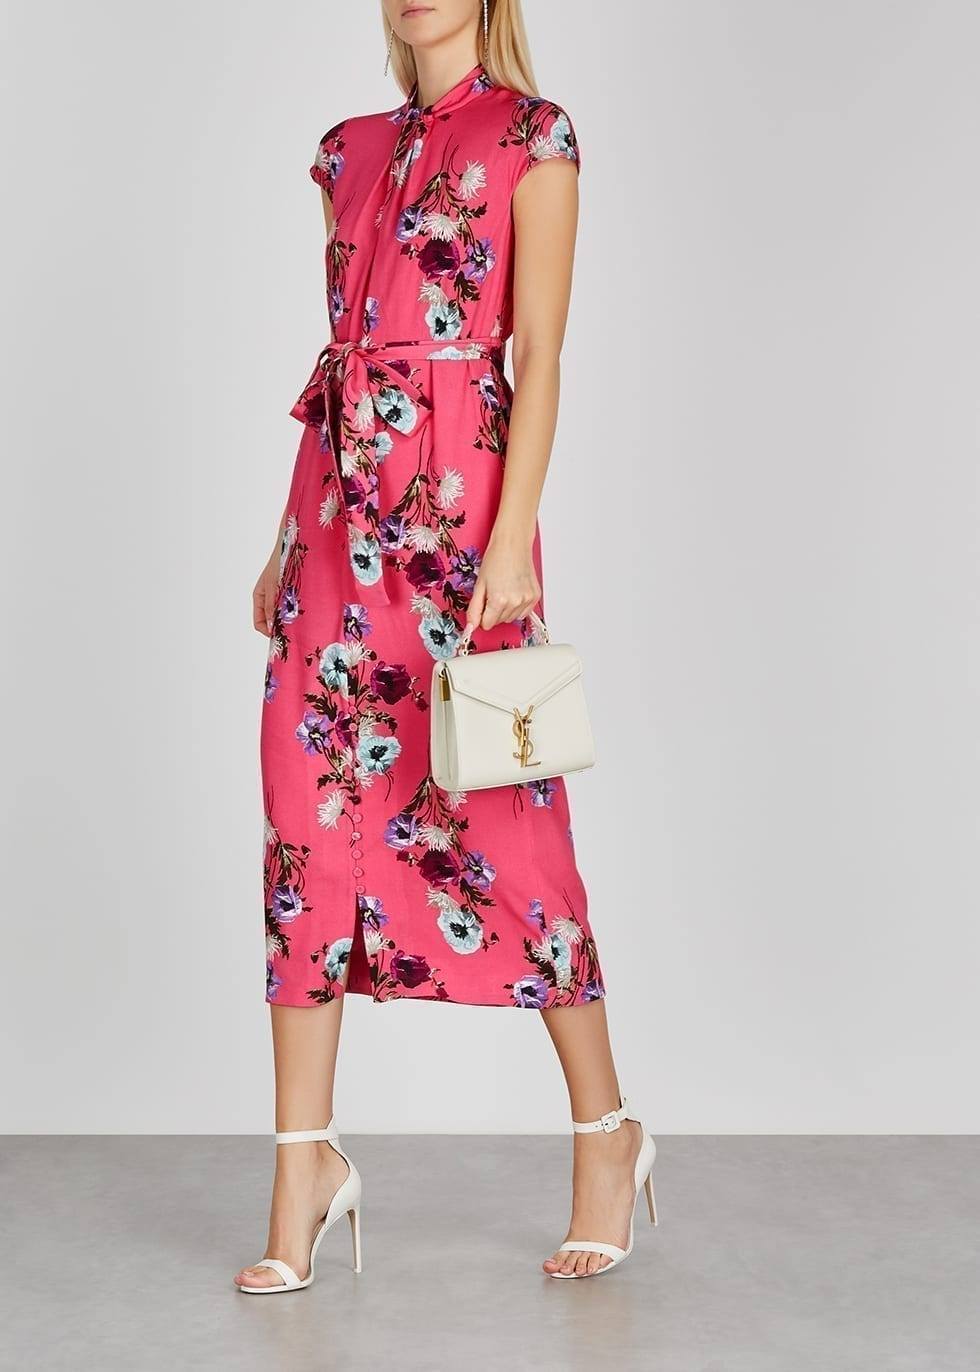 ERDEM Finn Pink Floral-print Dress